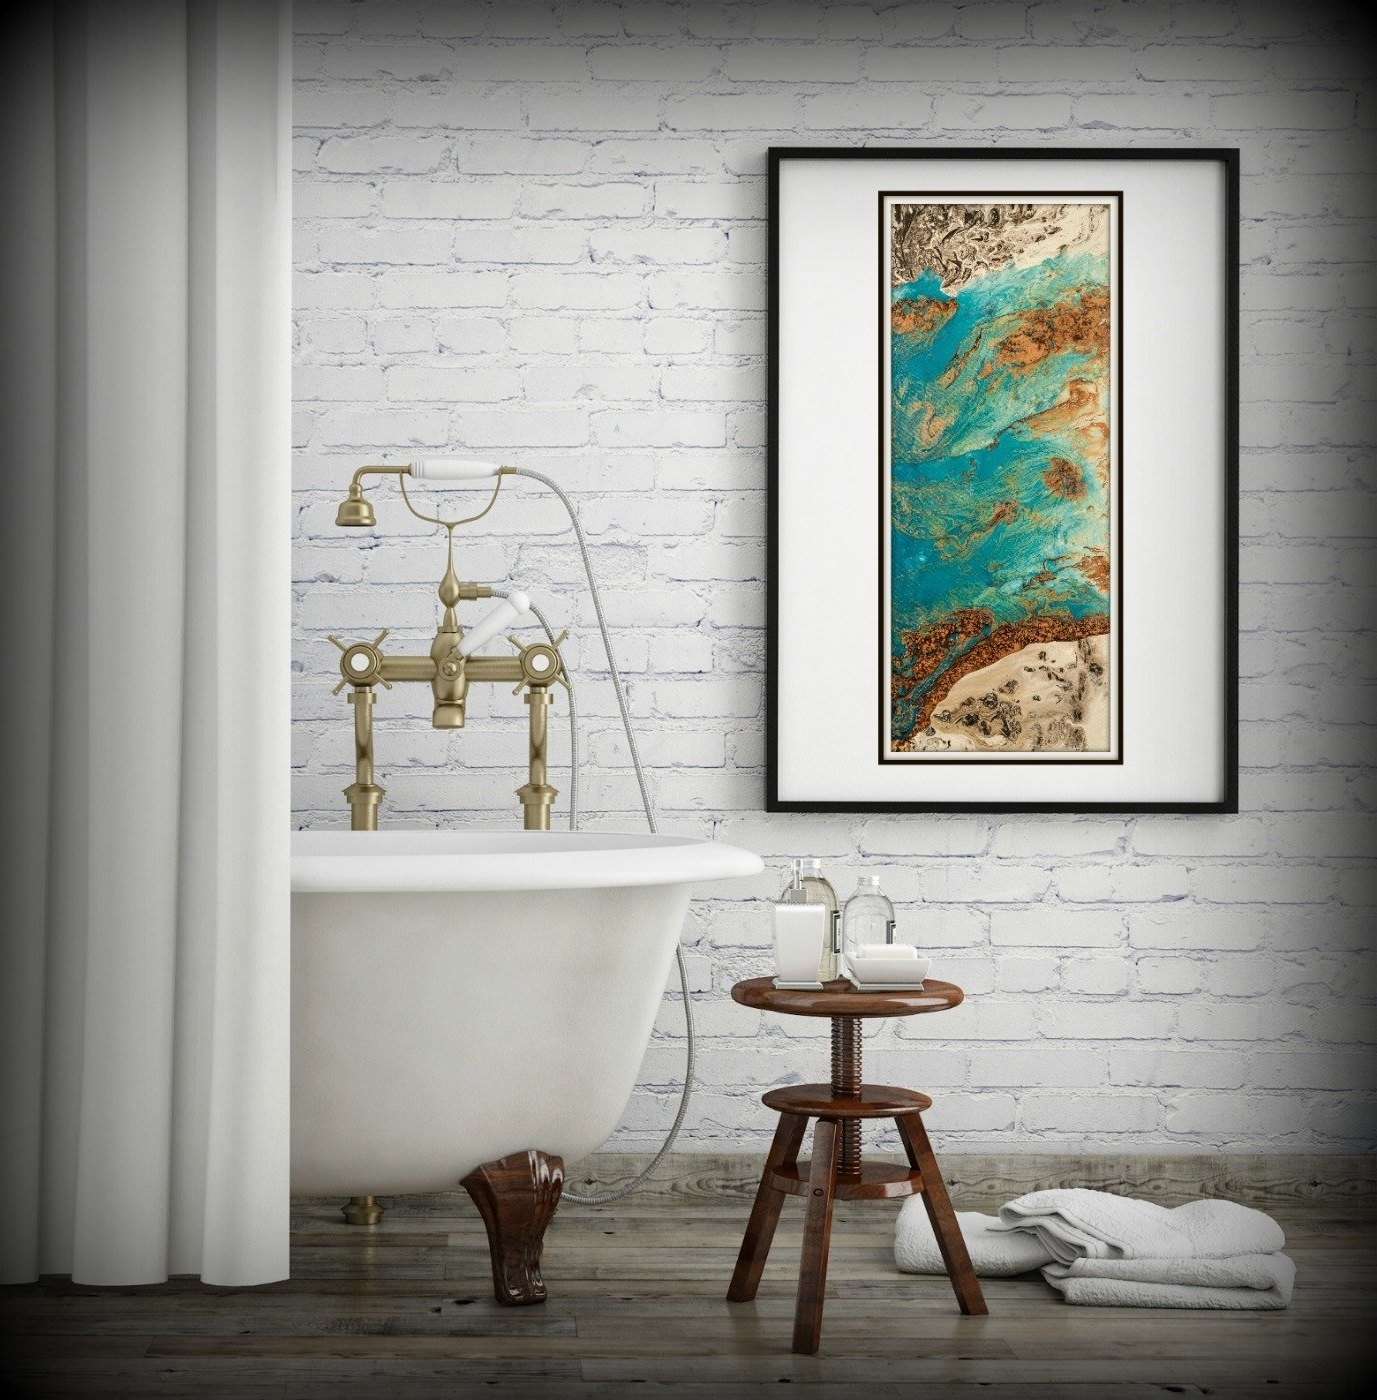 Most Current Vertical Wall Art With Regard To Blue And Copper Art, Vertical Wall Art Prints Fine Art Prints (View 13 of 20)